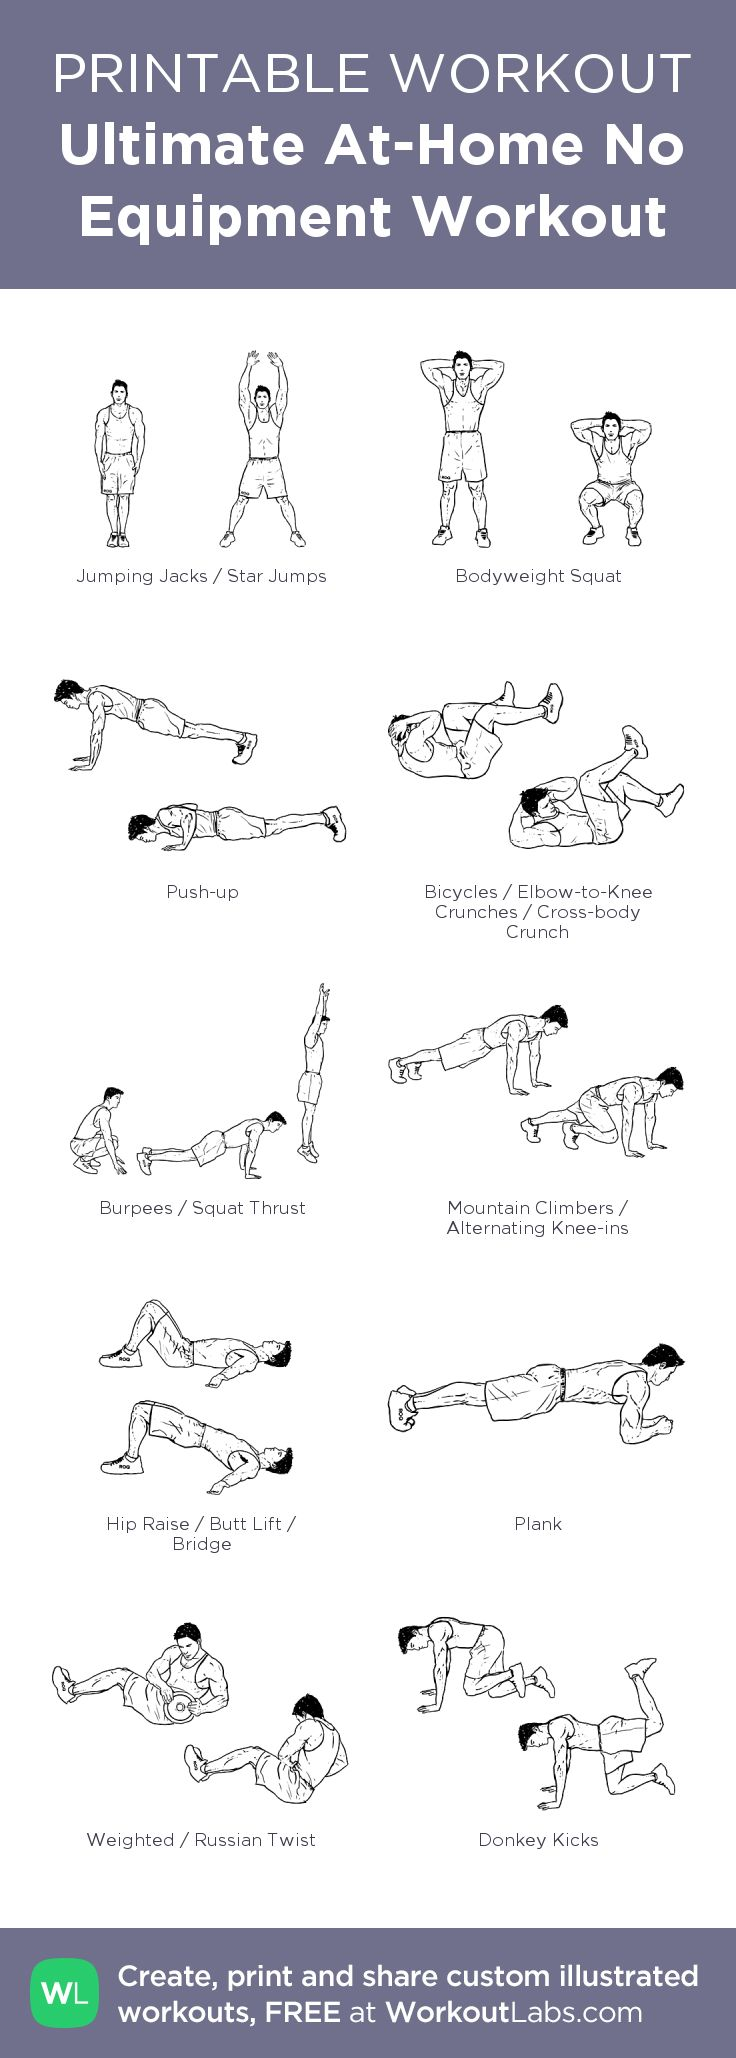 Ultimate At-Home No Equipment Workout from WorkoutLabs.com • Click through to download as printable PDF! #customworkout